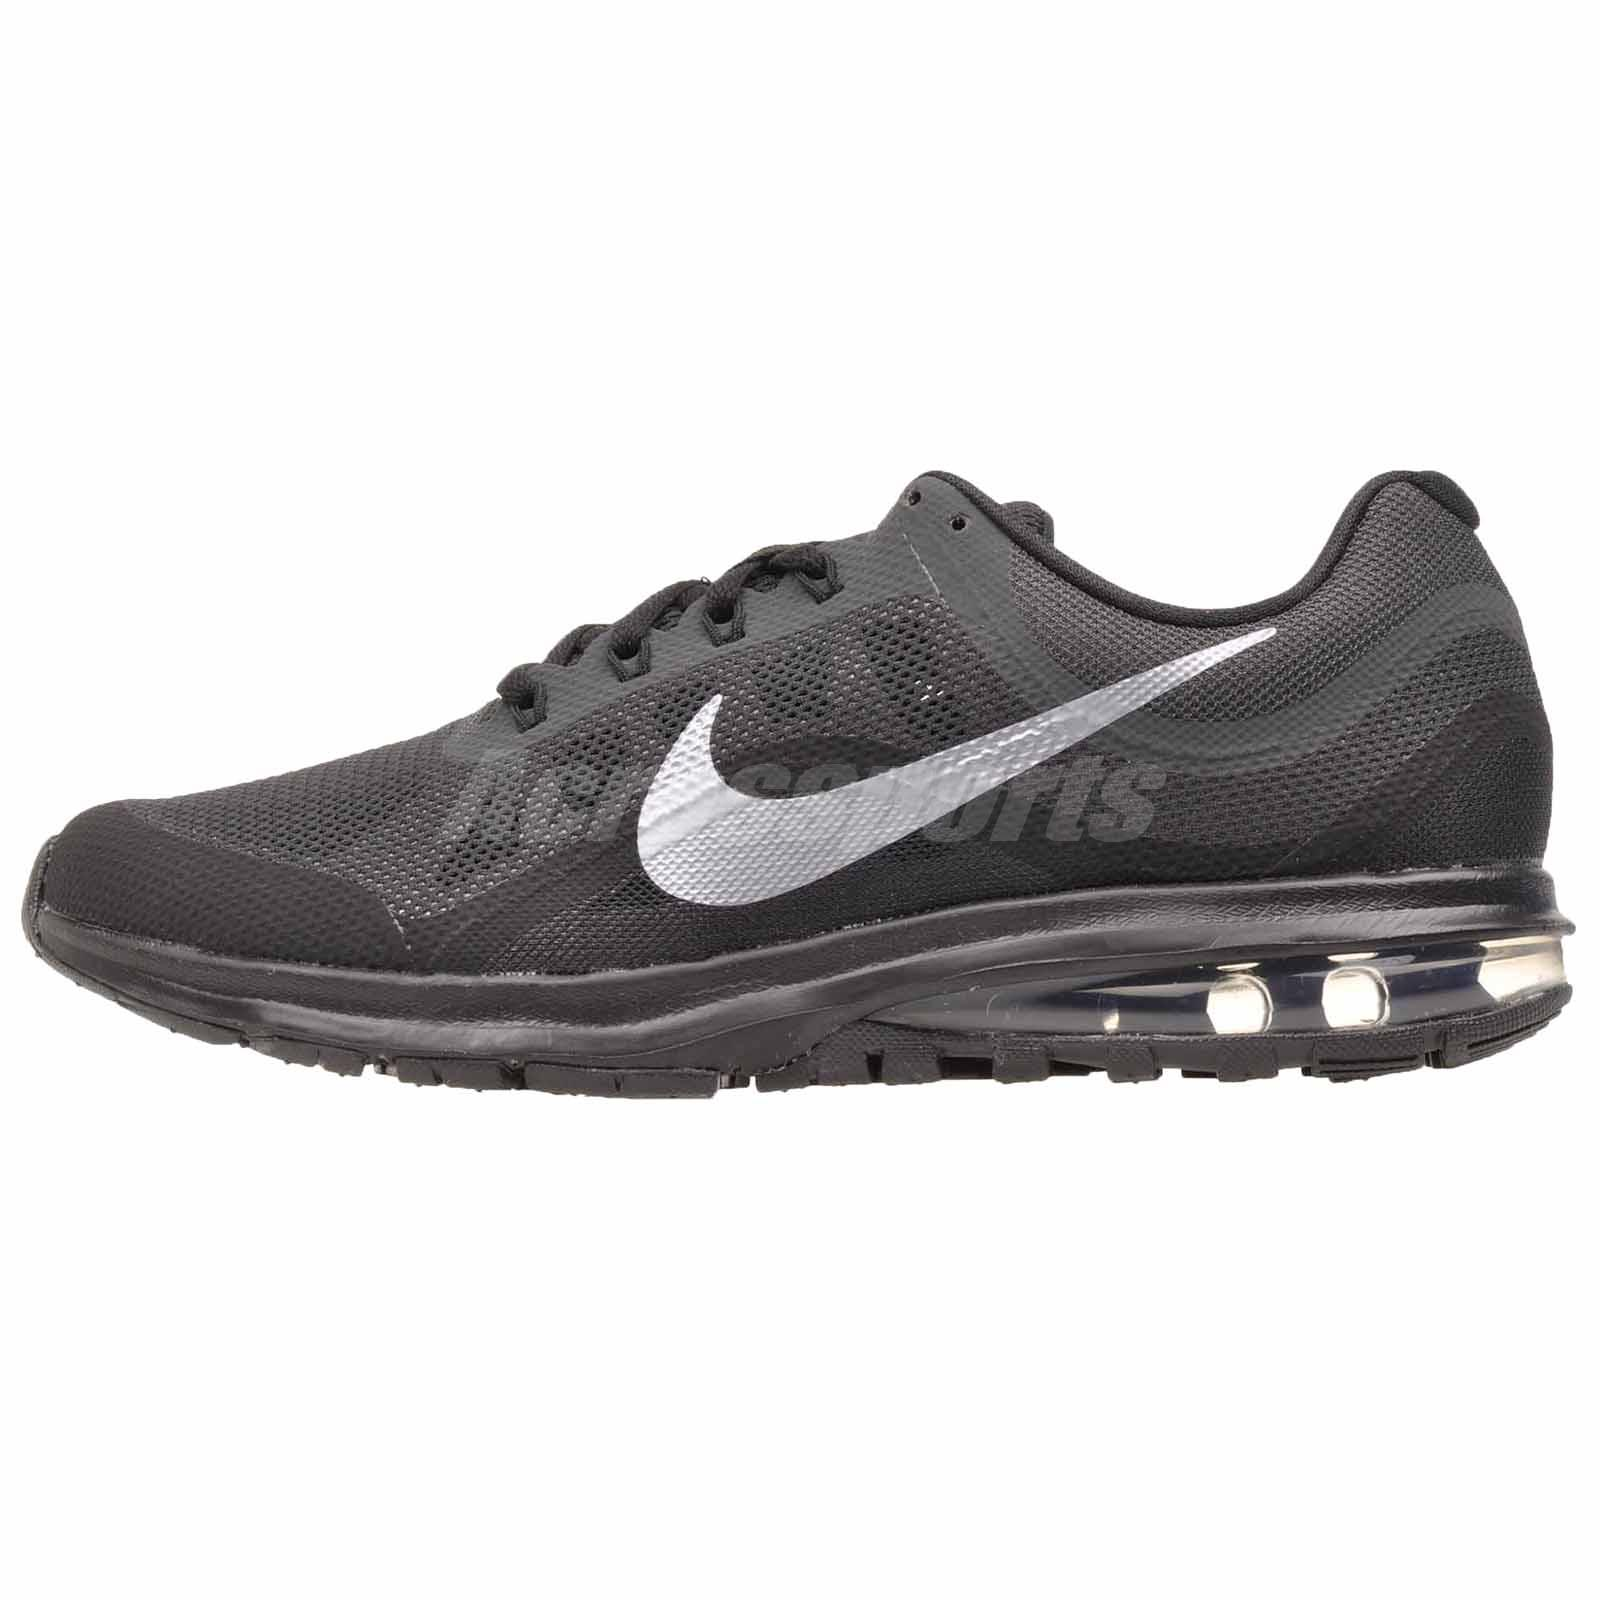 wholesale dealer 9baf8 f2761 Details about Nike Air Max Dynasty 2 Running Mens Shoes Anthracite Cool  Grey 852430-003